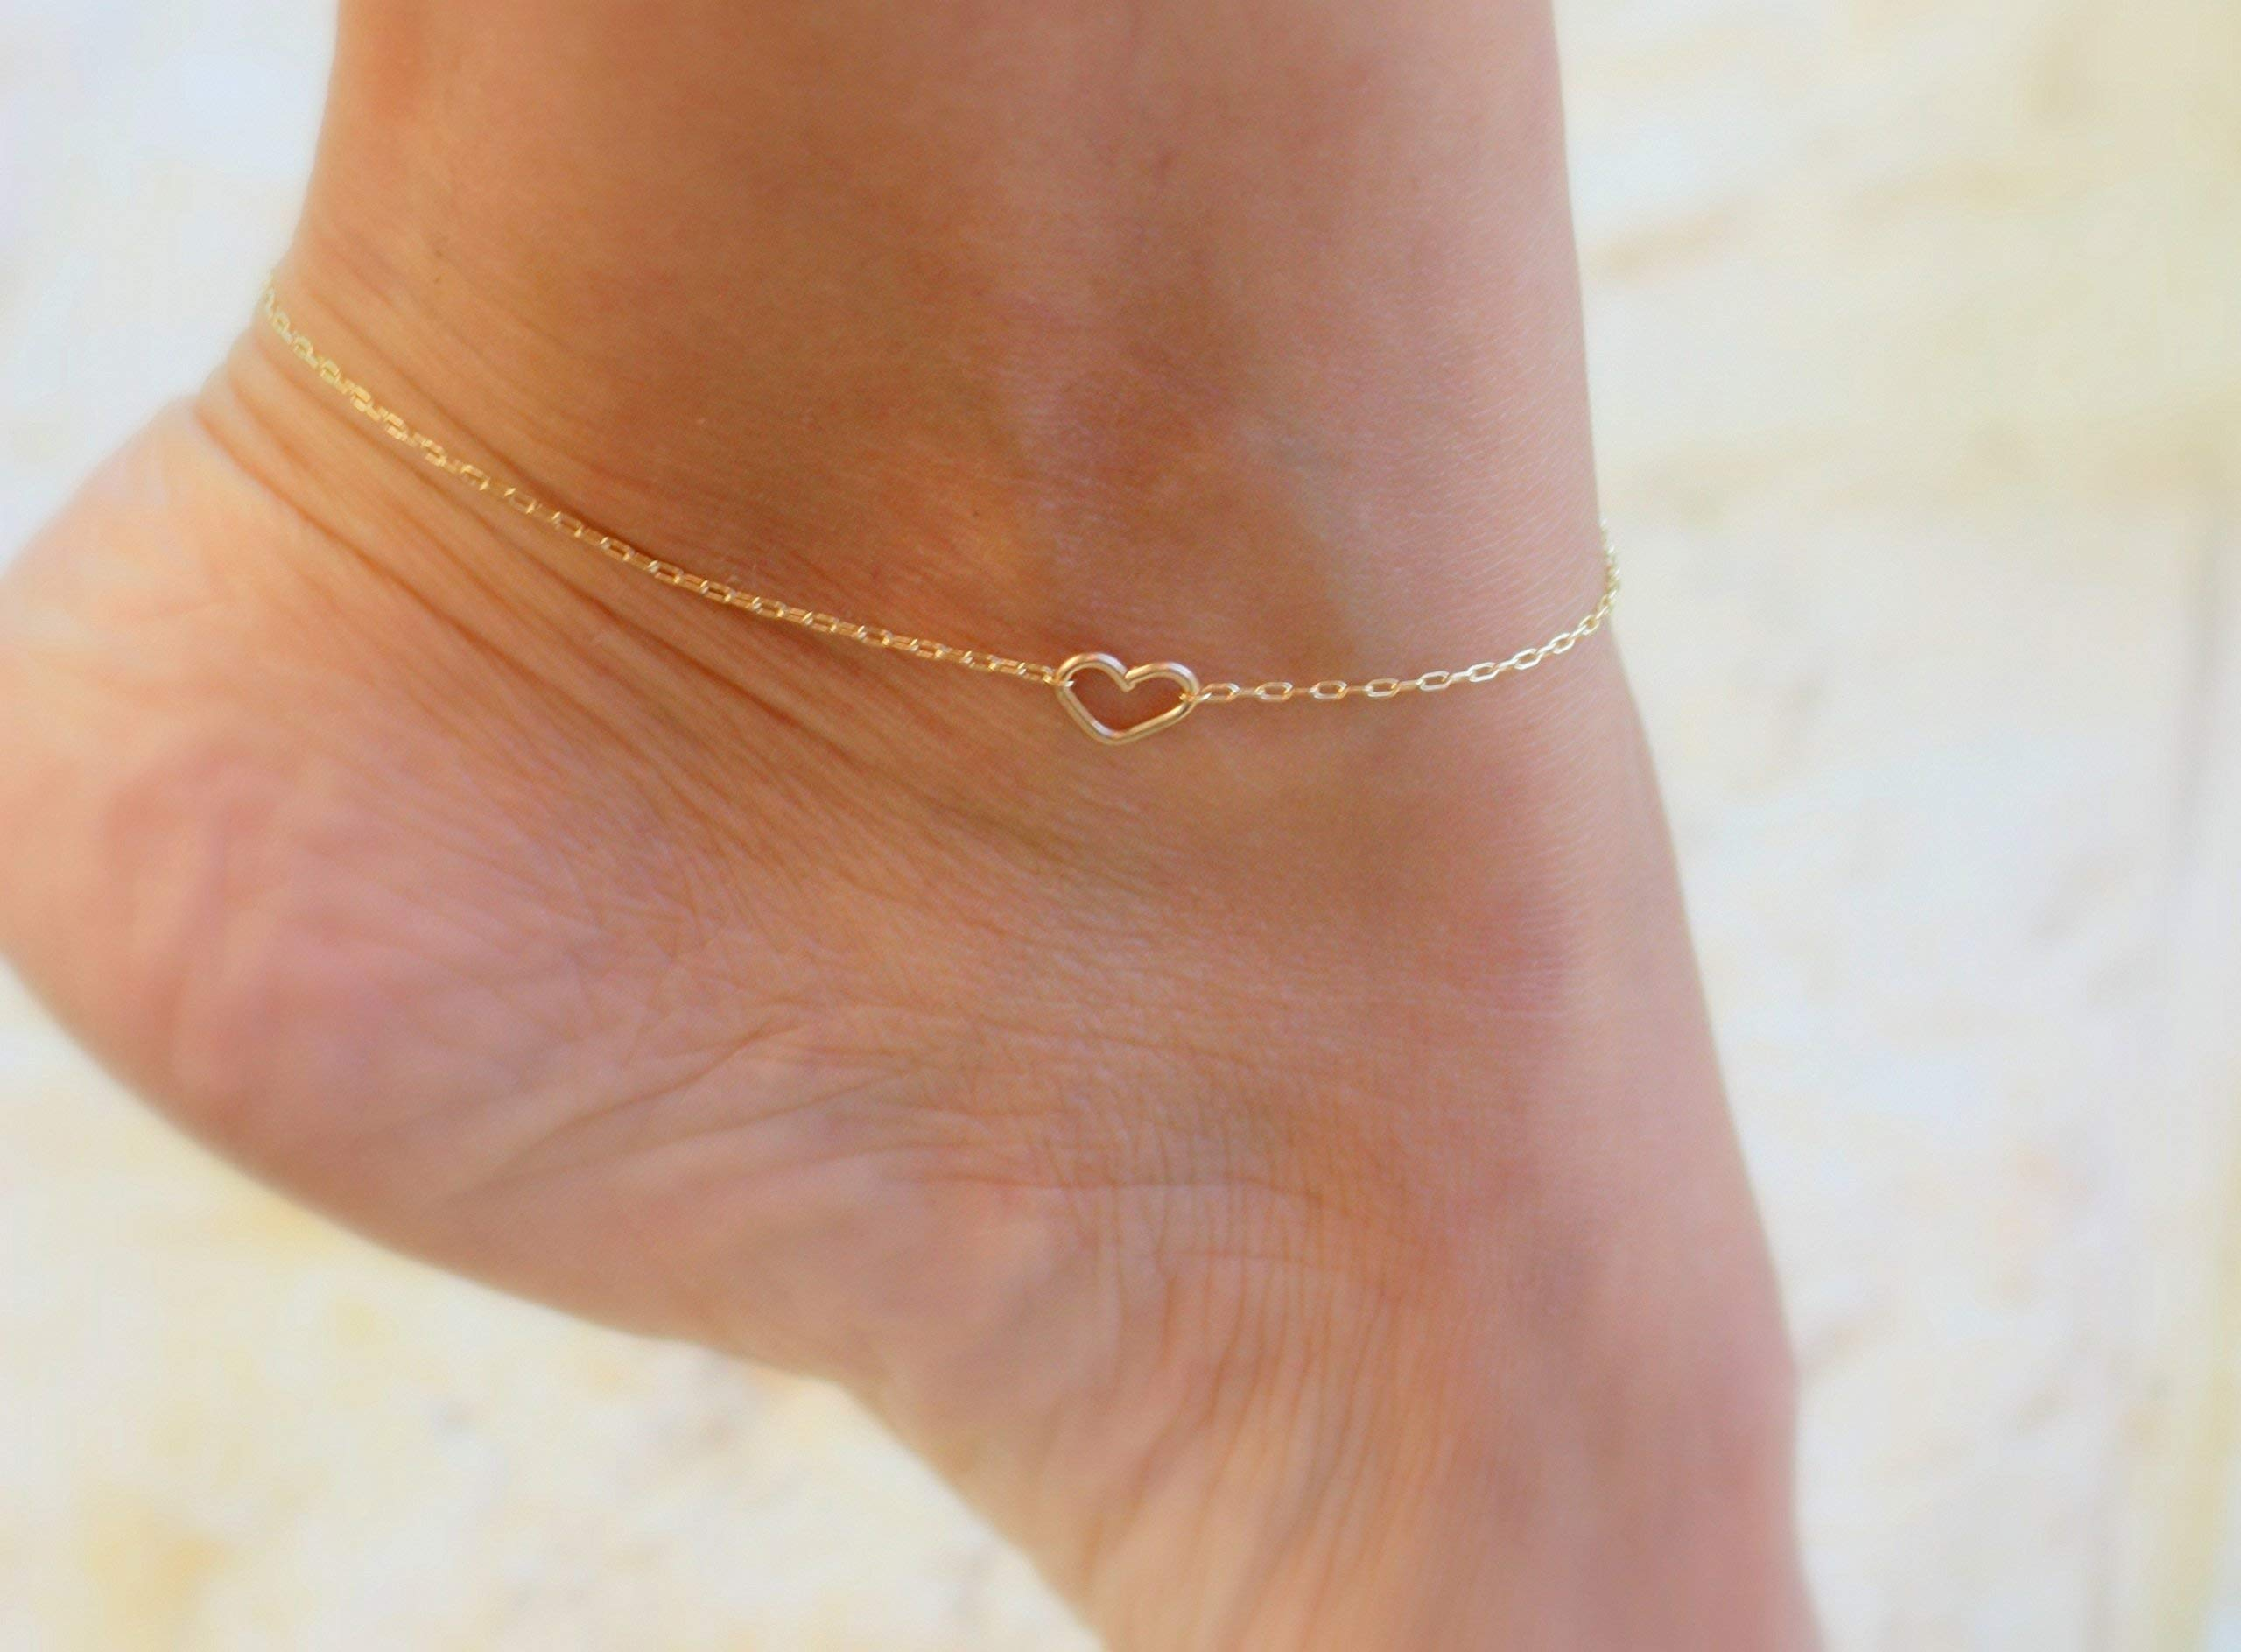 Simple Heart Ankle Bracelet Chain for Girls - Beach Foot Sandal Jewelry Fashion